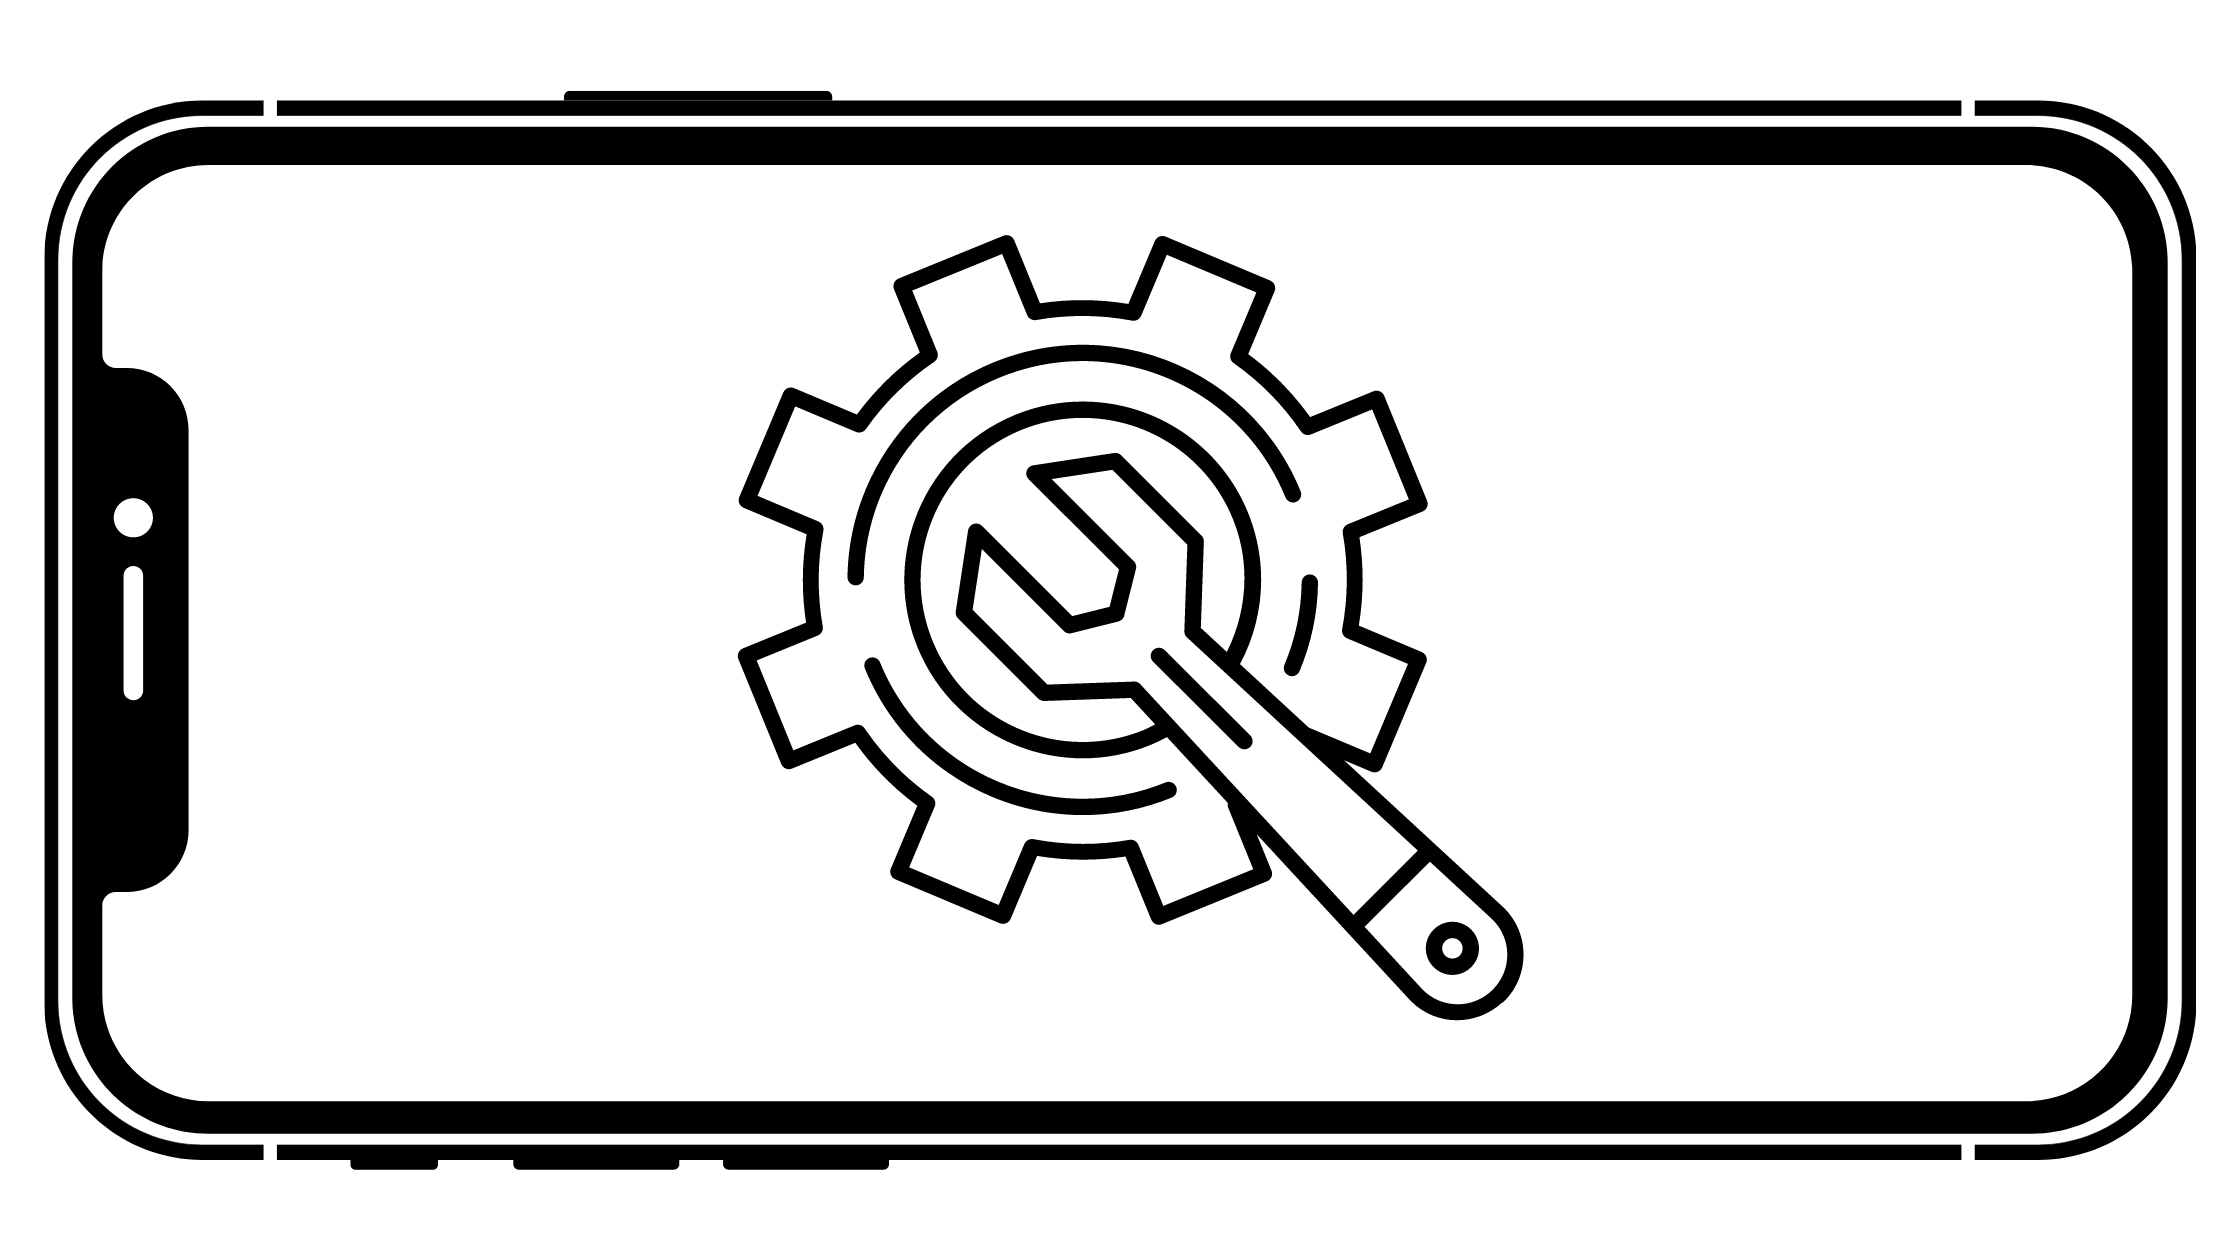 Phygital24 business manager app image icon